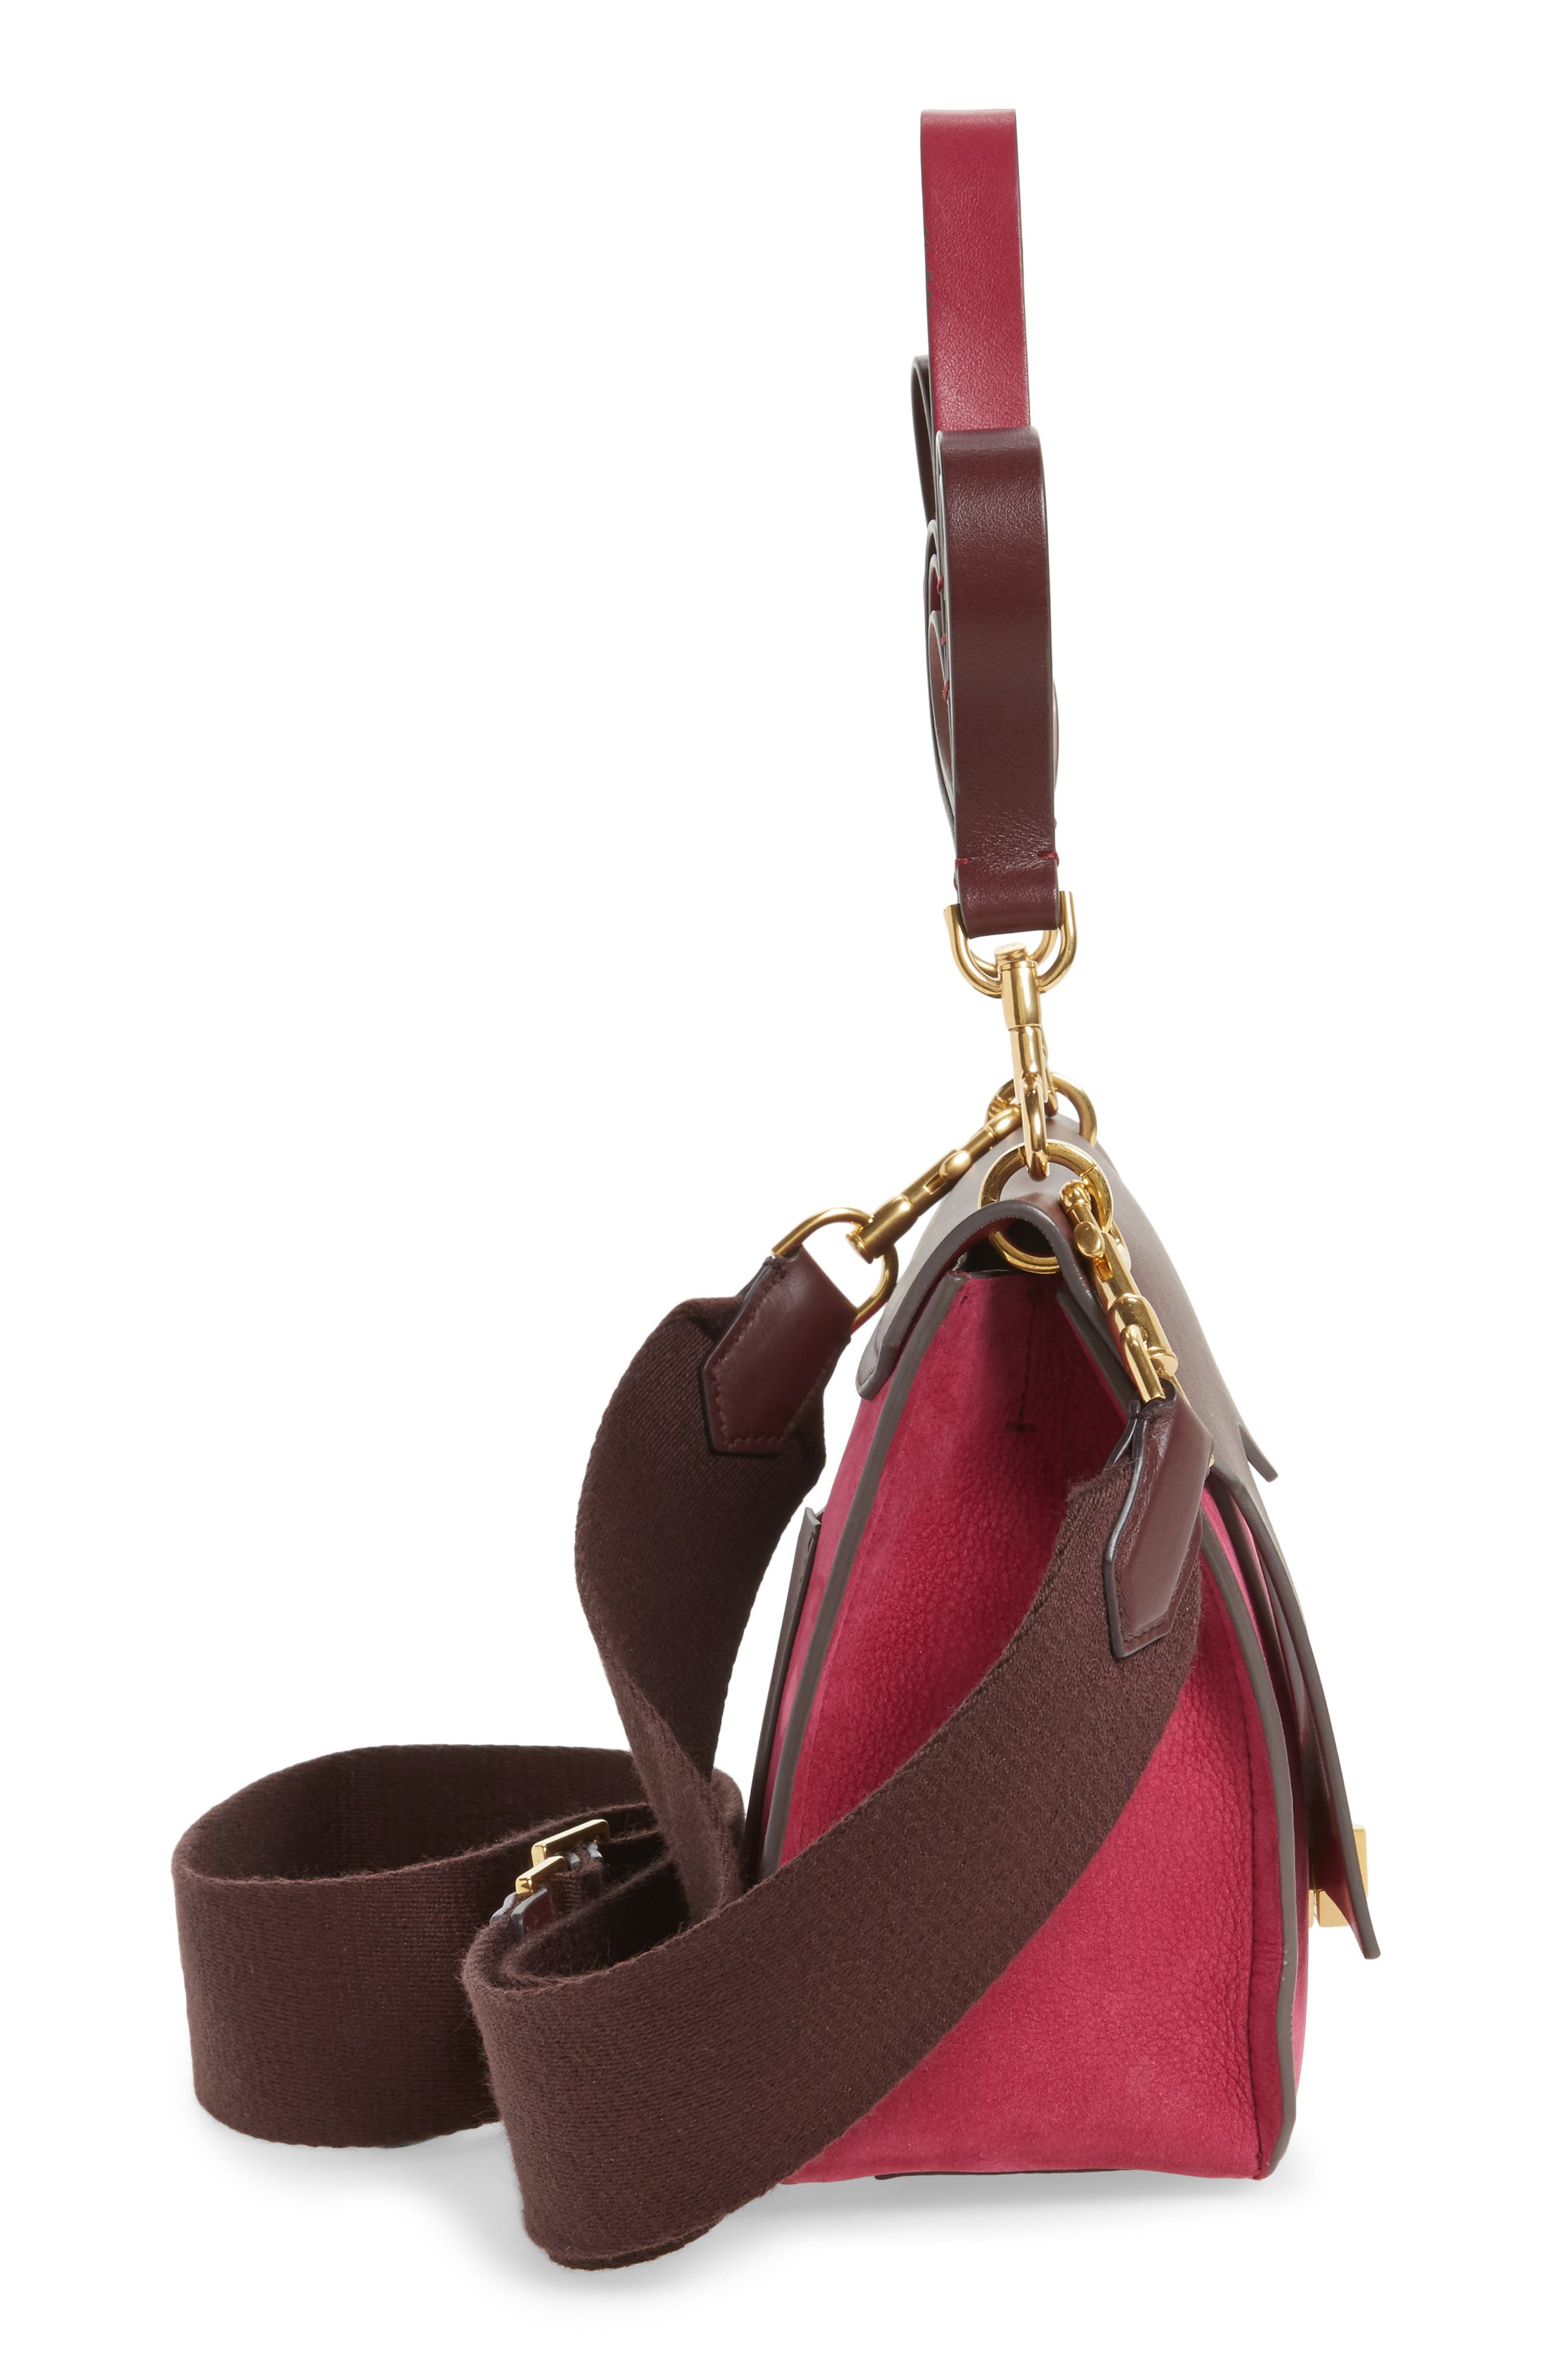 Extra Small Bathhurst Heart Leather Shoulder Bag,                             Alternate thumbnail 5, color,                             650